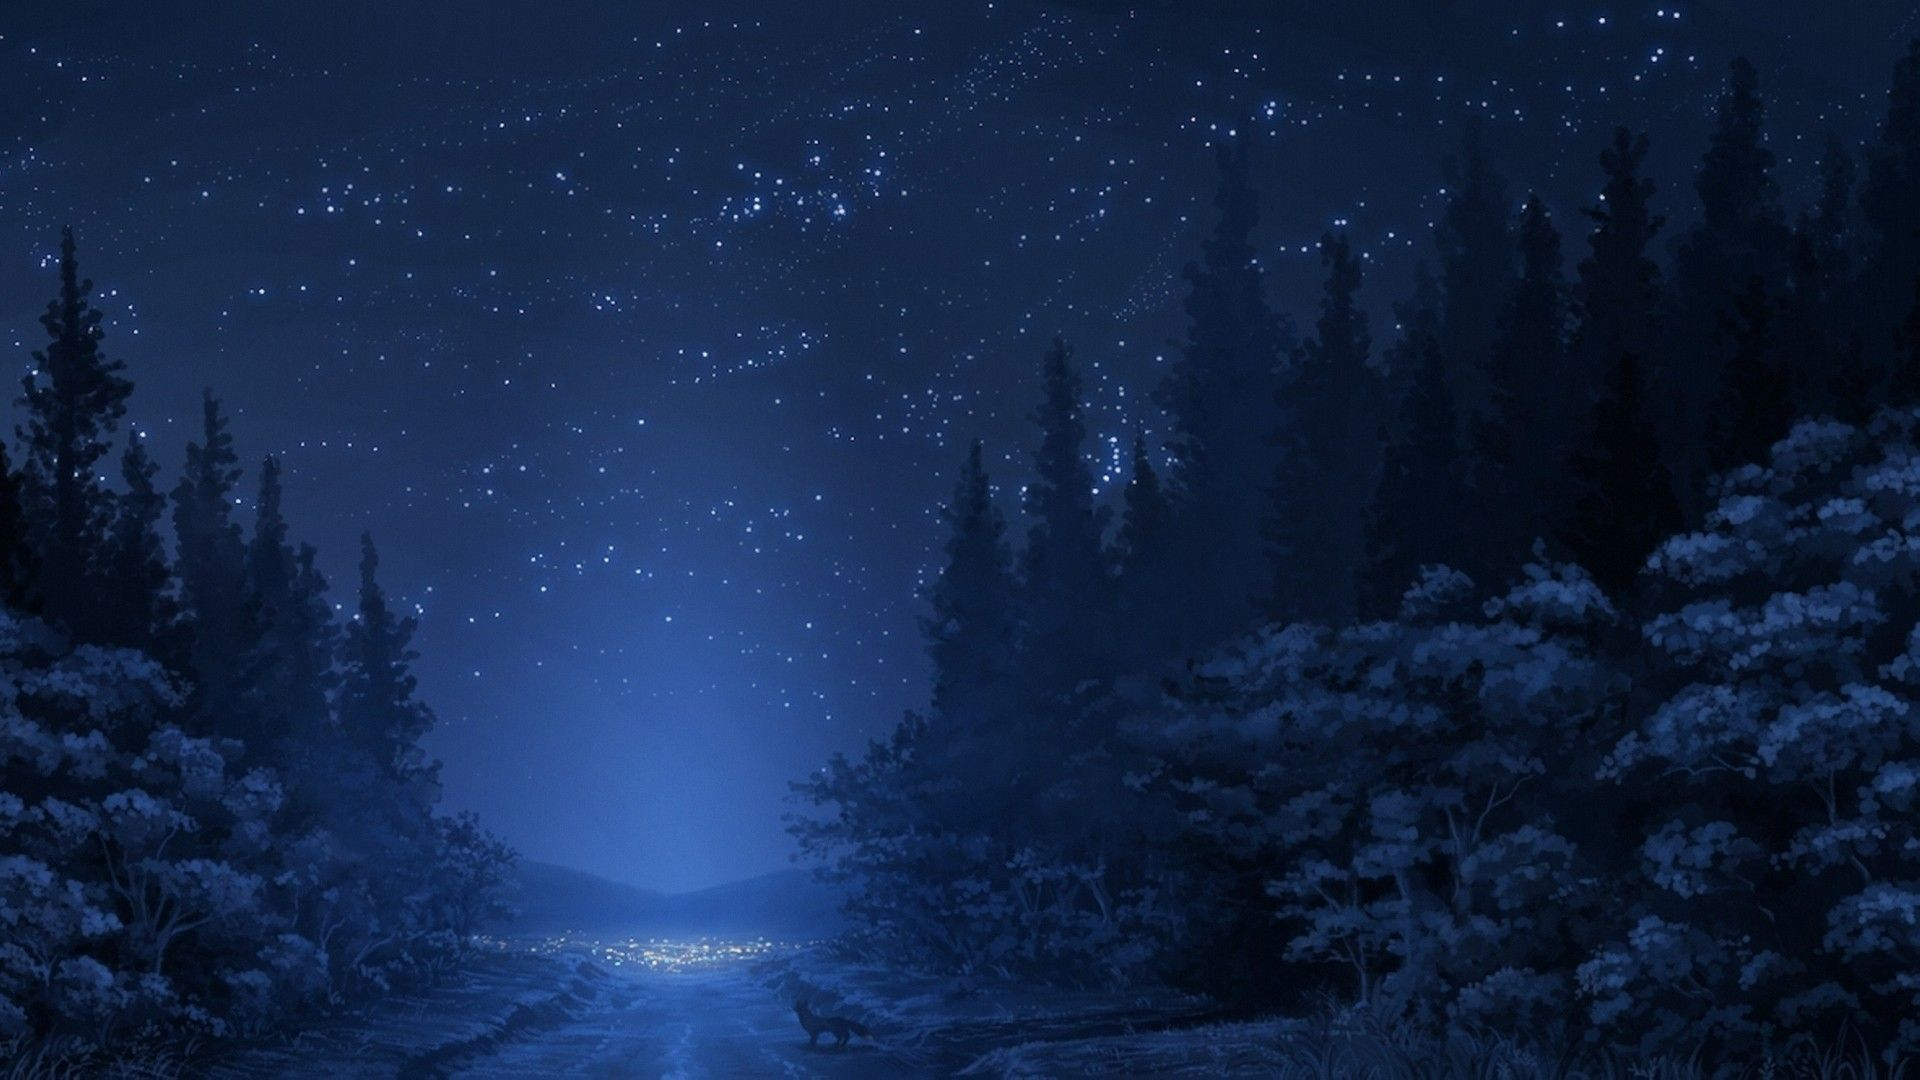 Winter A Relaxing Night 1920x1080 Z Need Iphone 6s Plus Wallpaper Background For Ip Anime Scenery Anime Scenery Wallpaper Winter Night Wallpaper